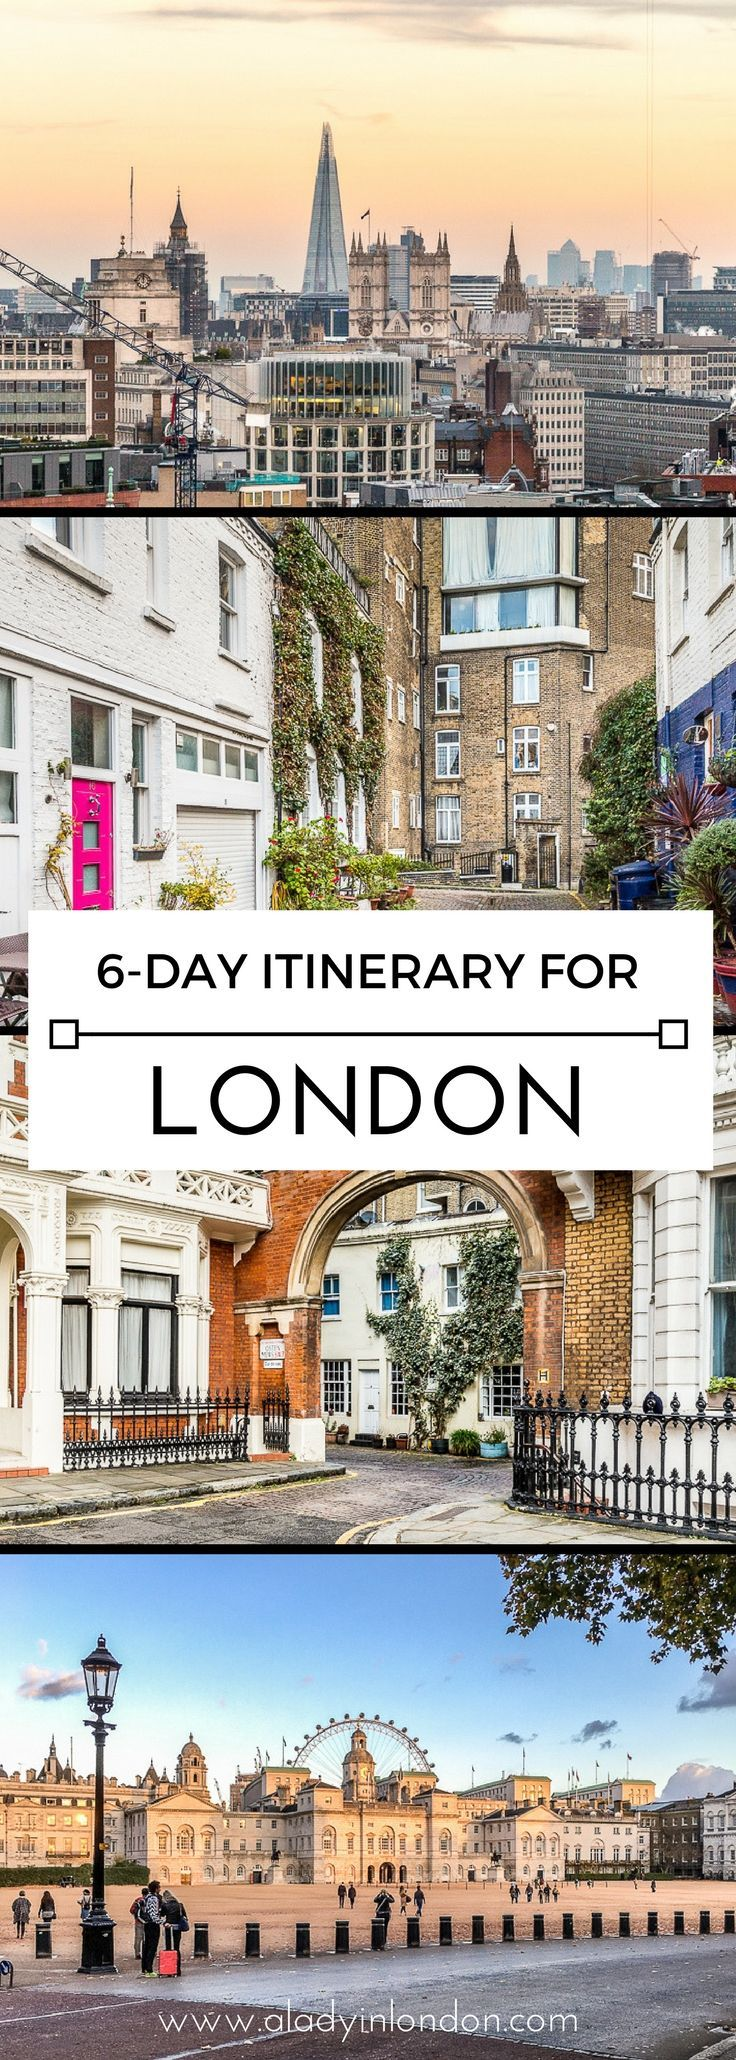 A lovely 6-day London travel itinerary for those visiting the UK capital. #london #itinerary #travel #england